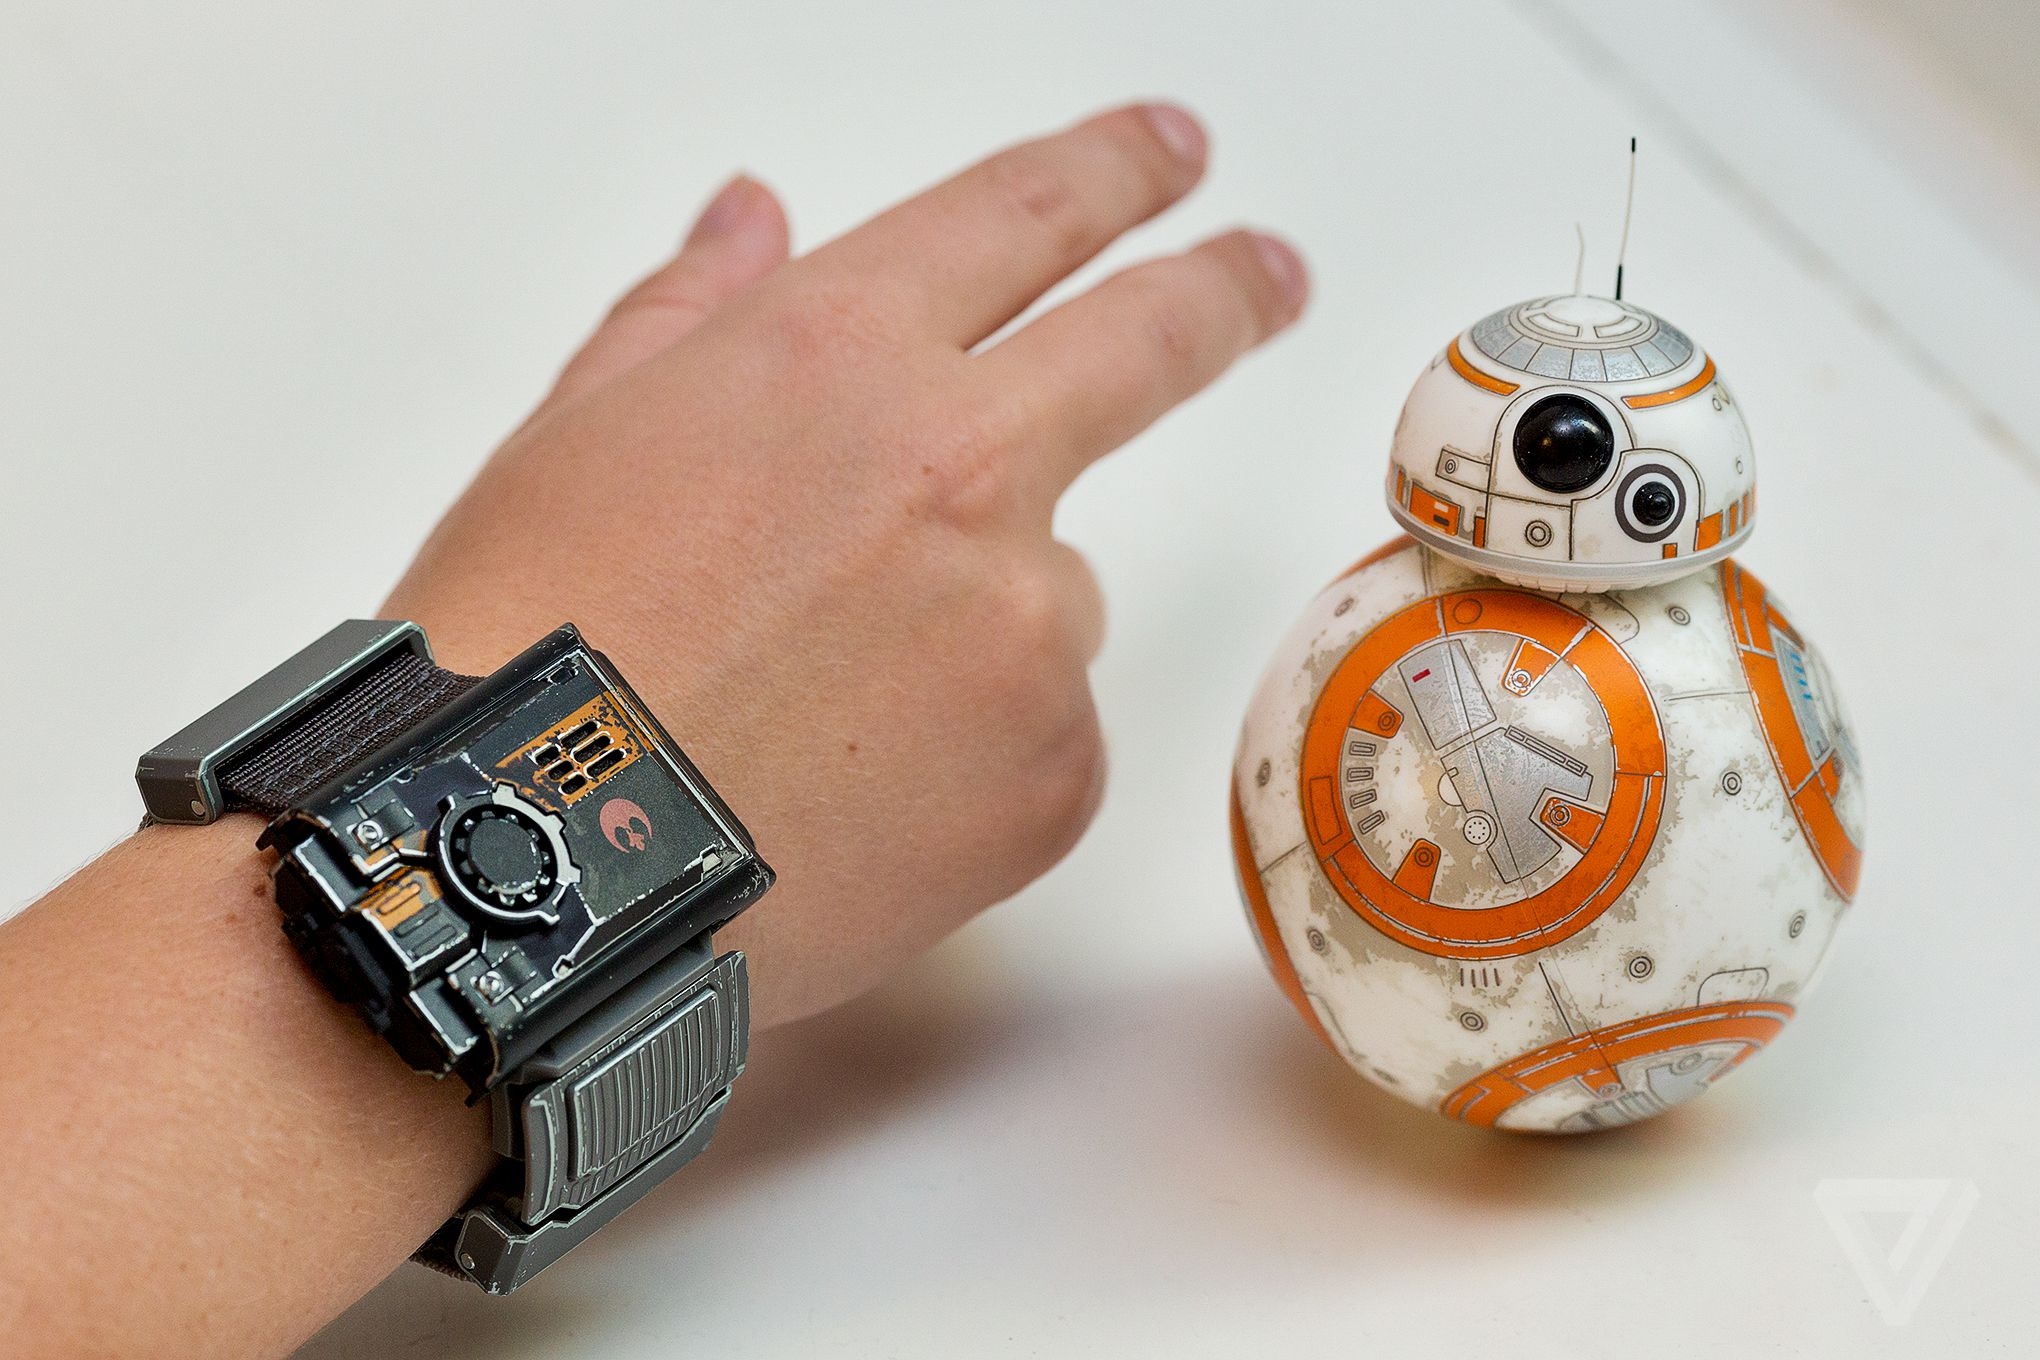 Sphero announces Force Band wearable device and special editon BB-8 Droid